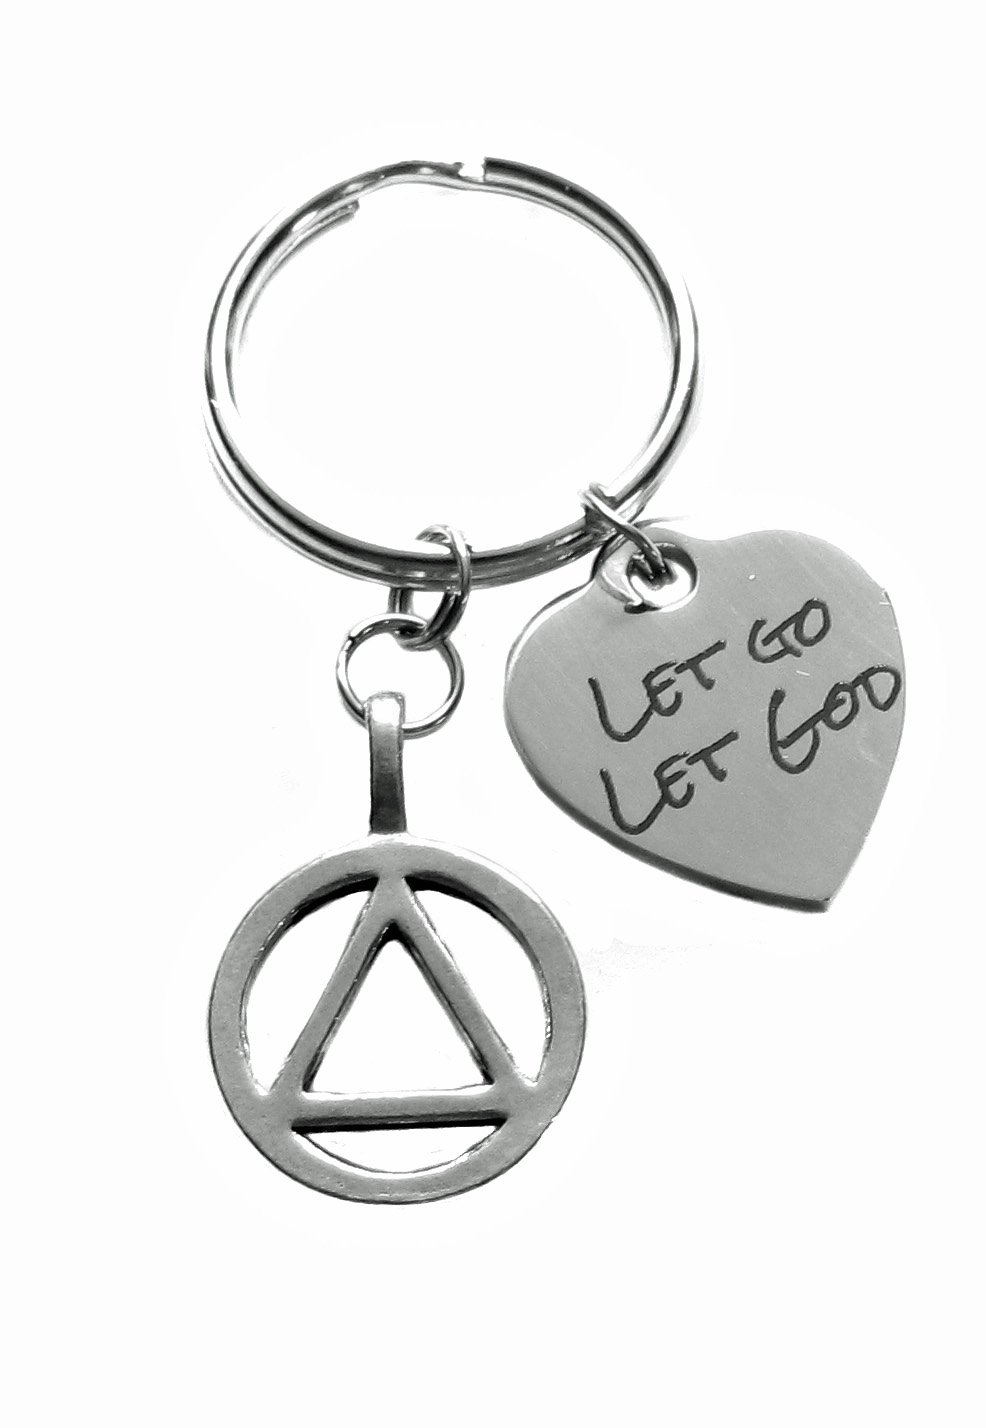 Alcoholics Anonymous AA Unity Symbol and Let Go Let God Charms 12 Step Anniversary Recovery Gift